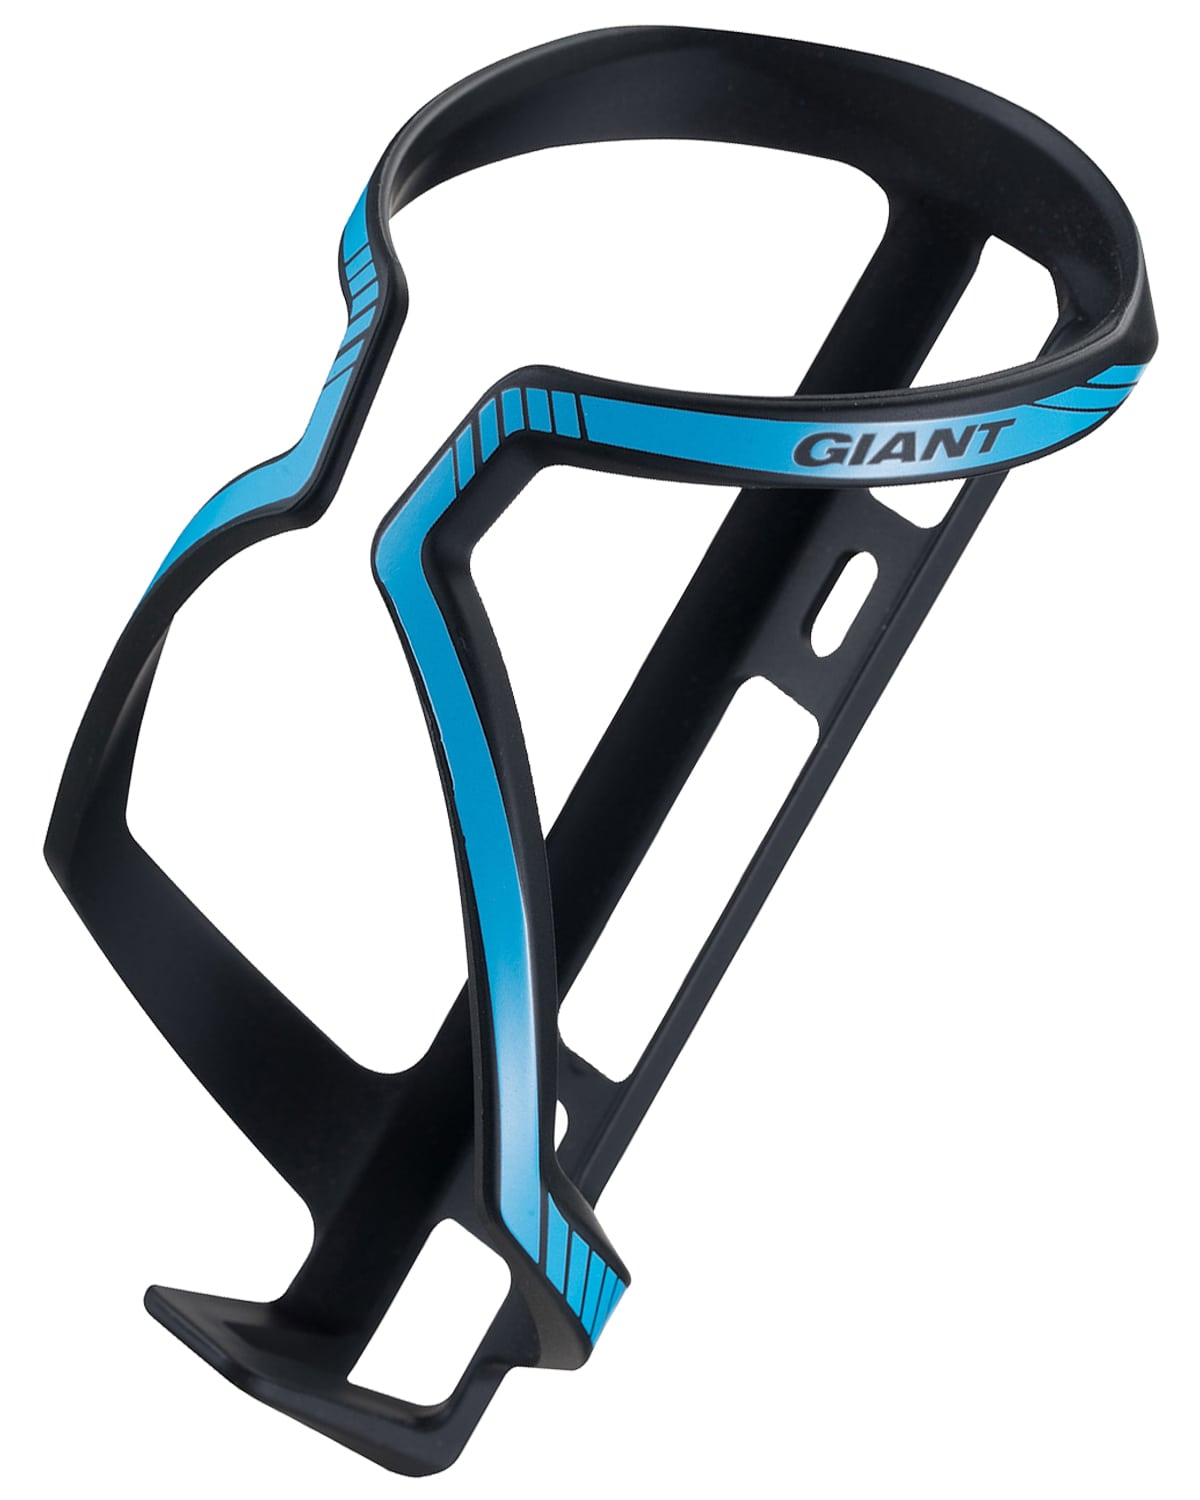 Matt Black /& Red GIANT Airway Carbon Water Bottle Cage